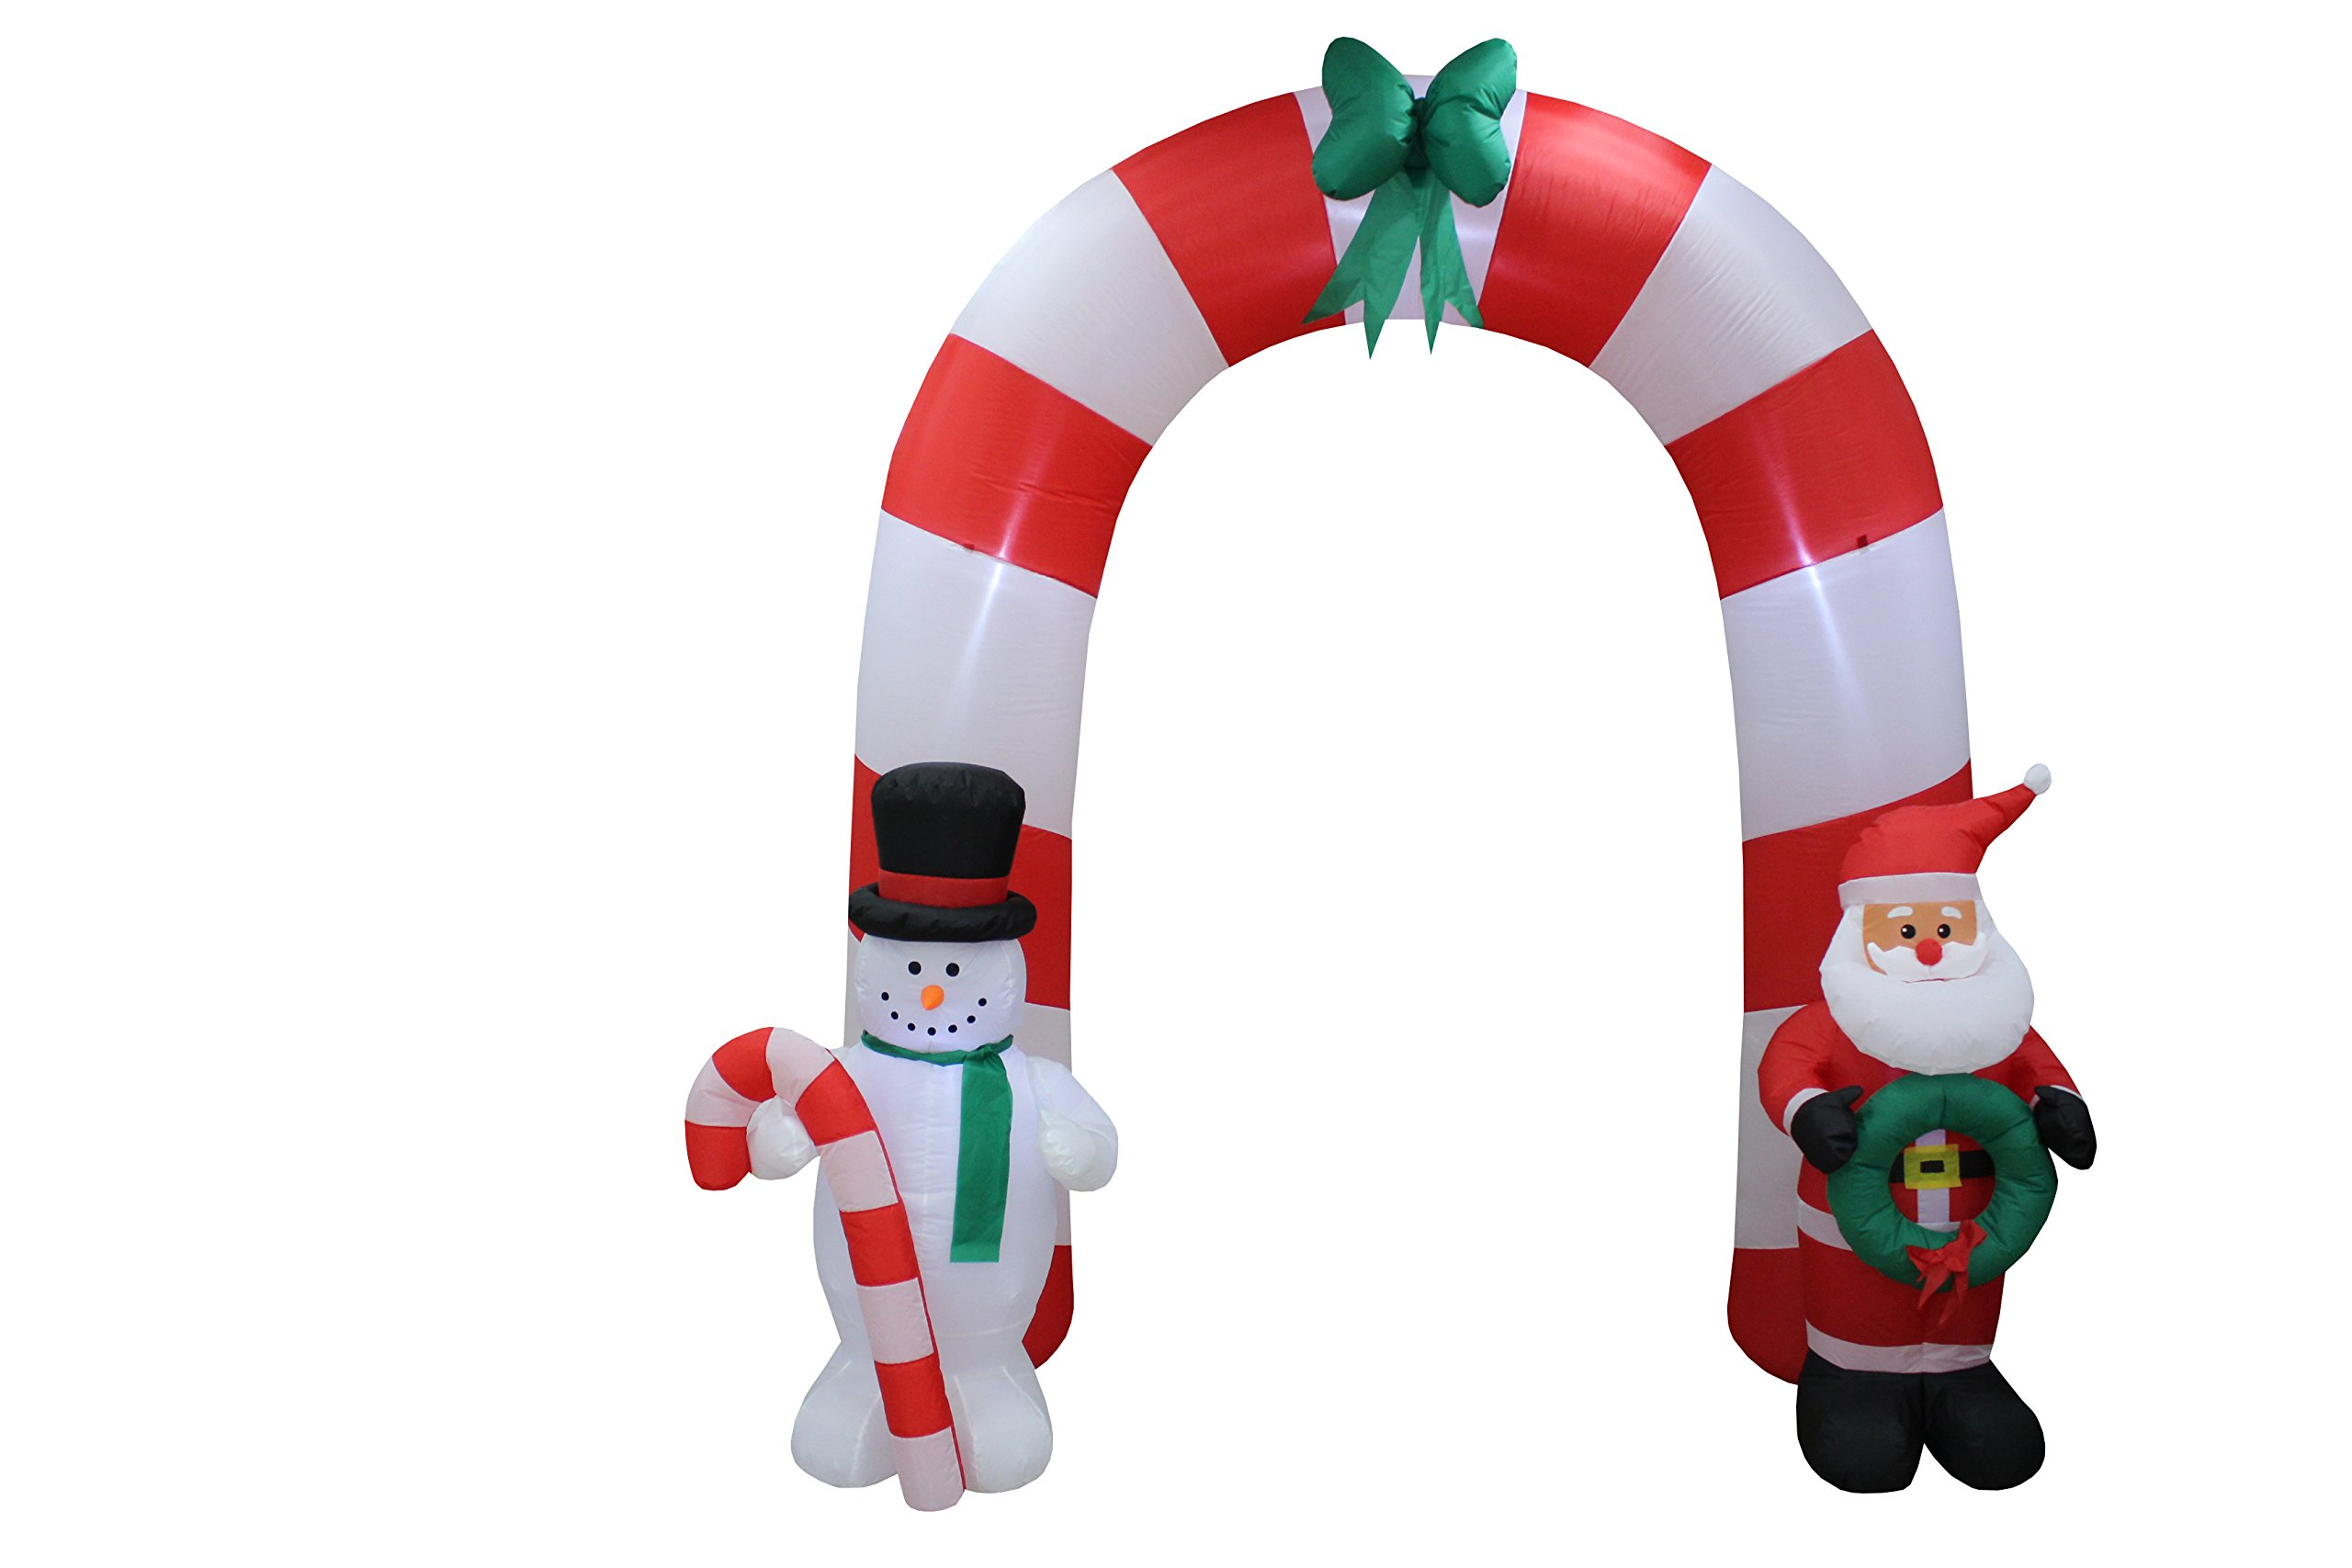 8 Foot Tall Lighted Christmas Inflatable Archway Arch with Santa Claus and Snowman Cute Indoor Outdoor Garden Yard Party Prop Decoration